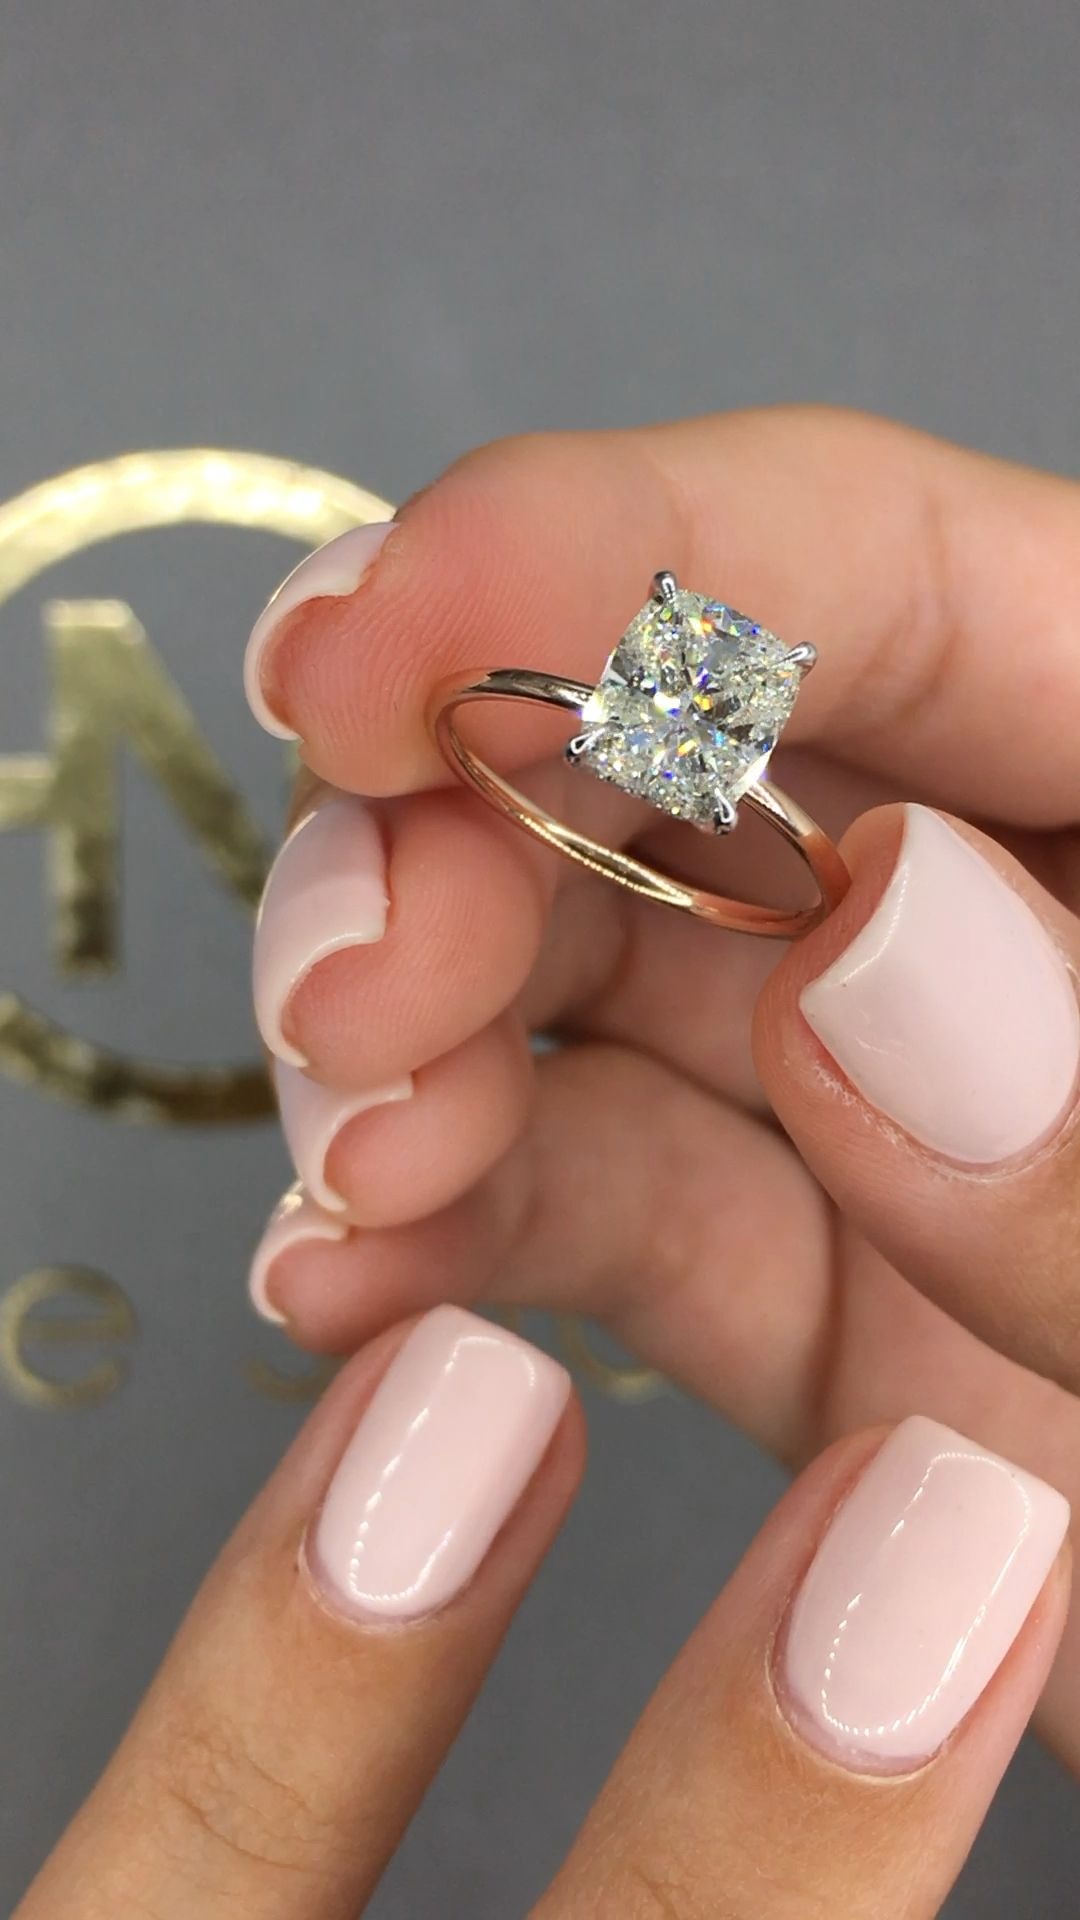 2020 New Rings For Women Trendy Gold Chains Rose Gold Pear Shaped Ring Tiara Engagement Ring Backdrop Necklace